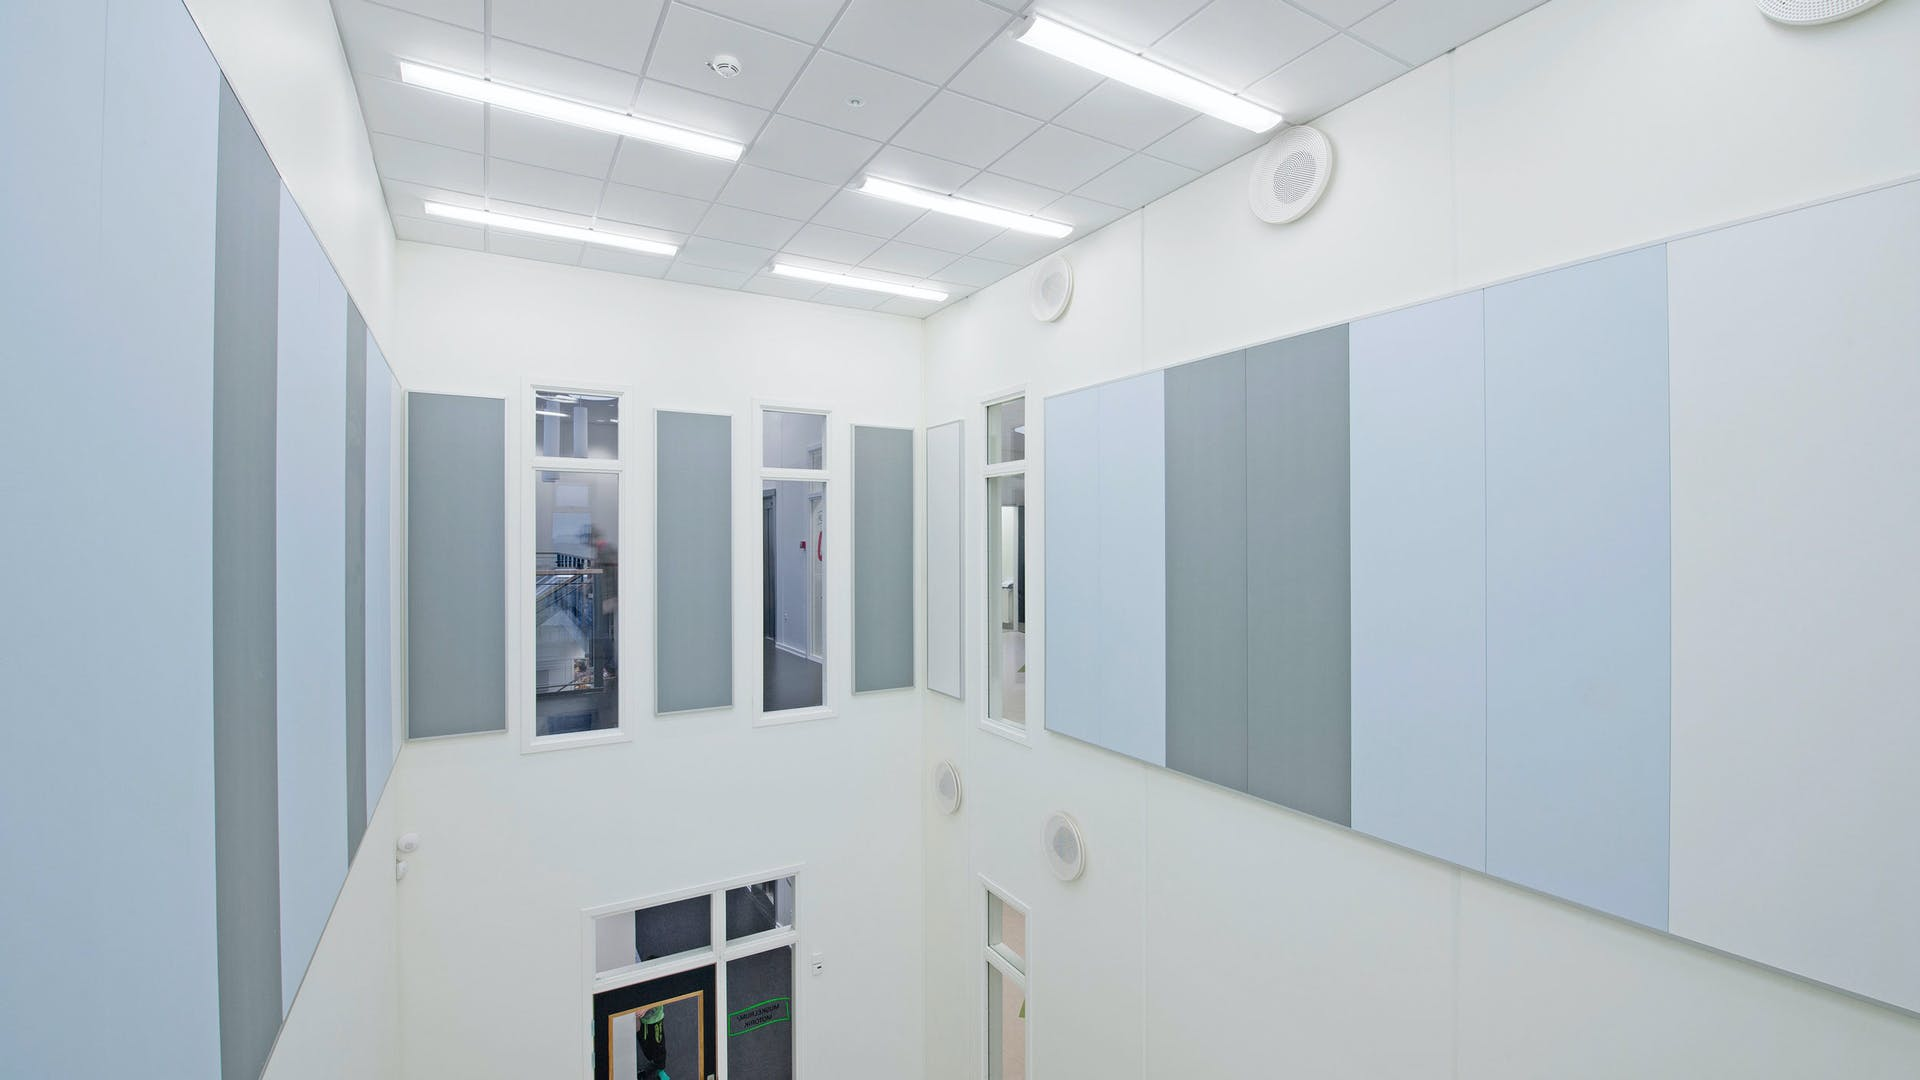 Highly sound absorbing acoustic wall panels with Rockfon VertiQ wall panel